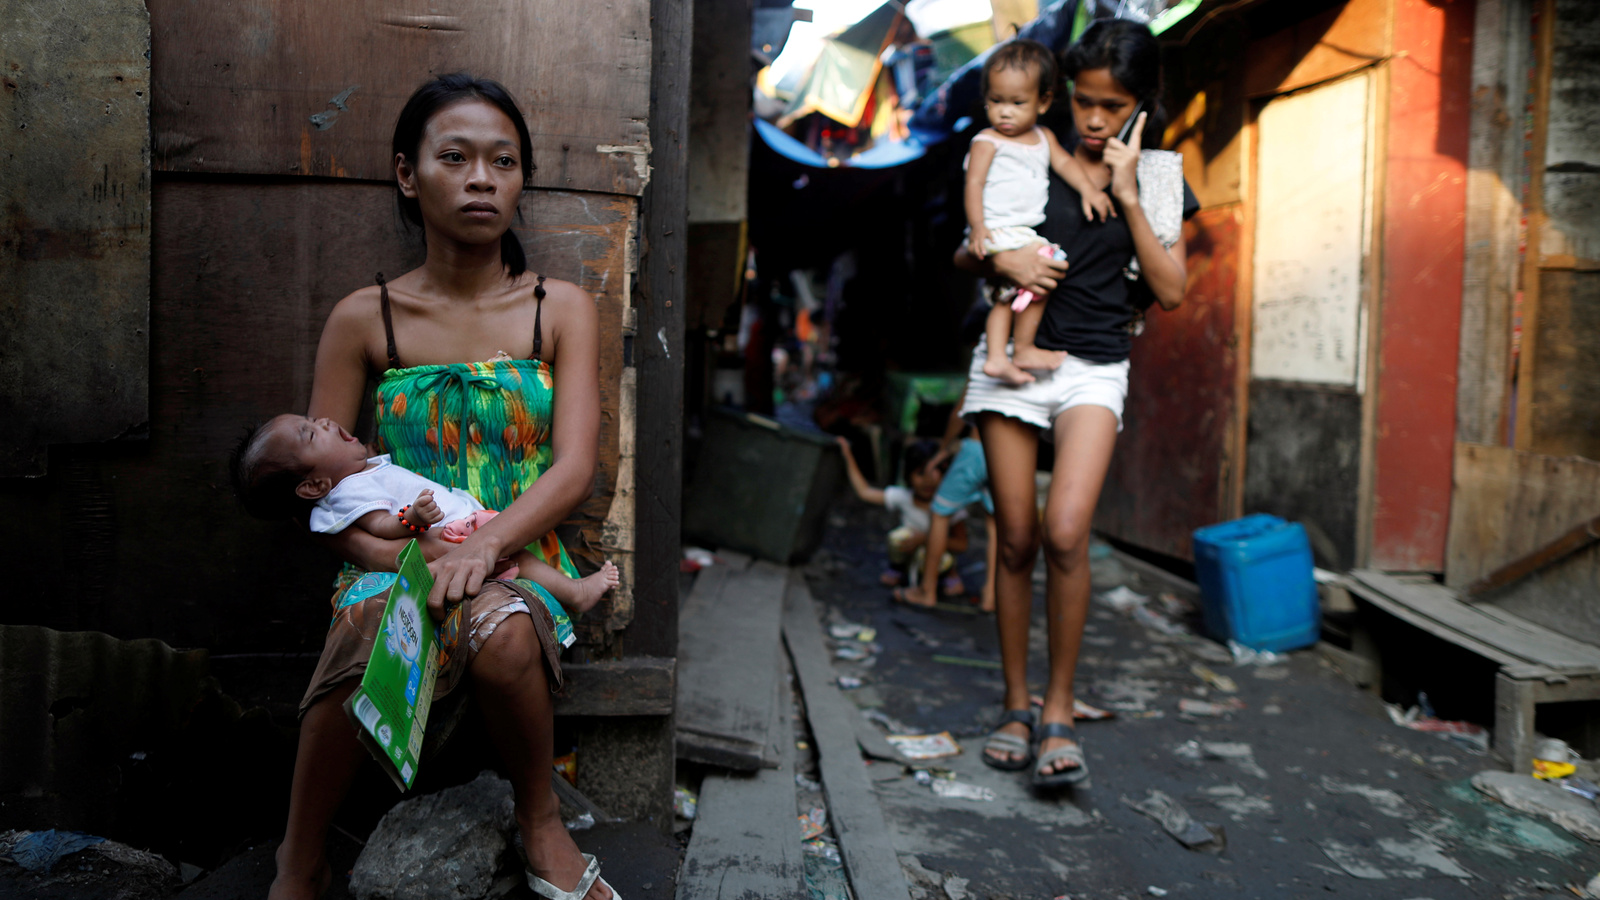 Residents are seen outside their shanties in Navotas, Metro Manila, Philippines, where Jazmine Durana lives, Oct. 28, 2017.